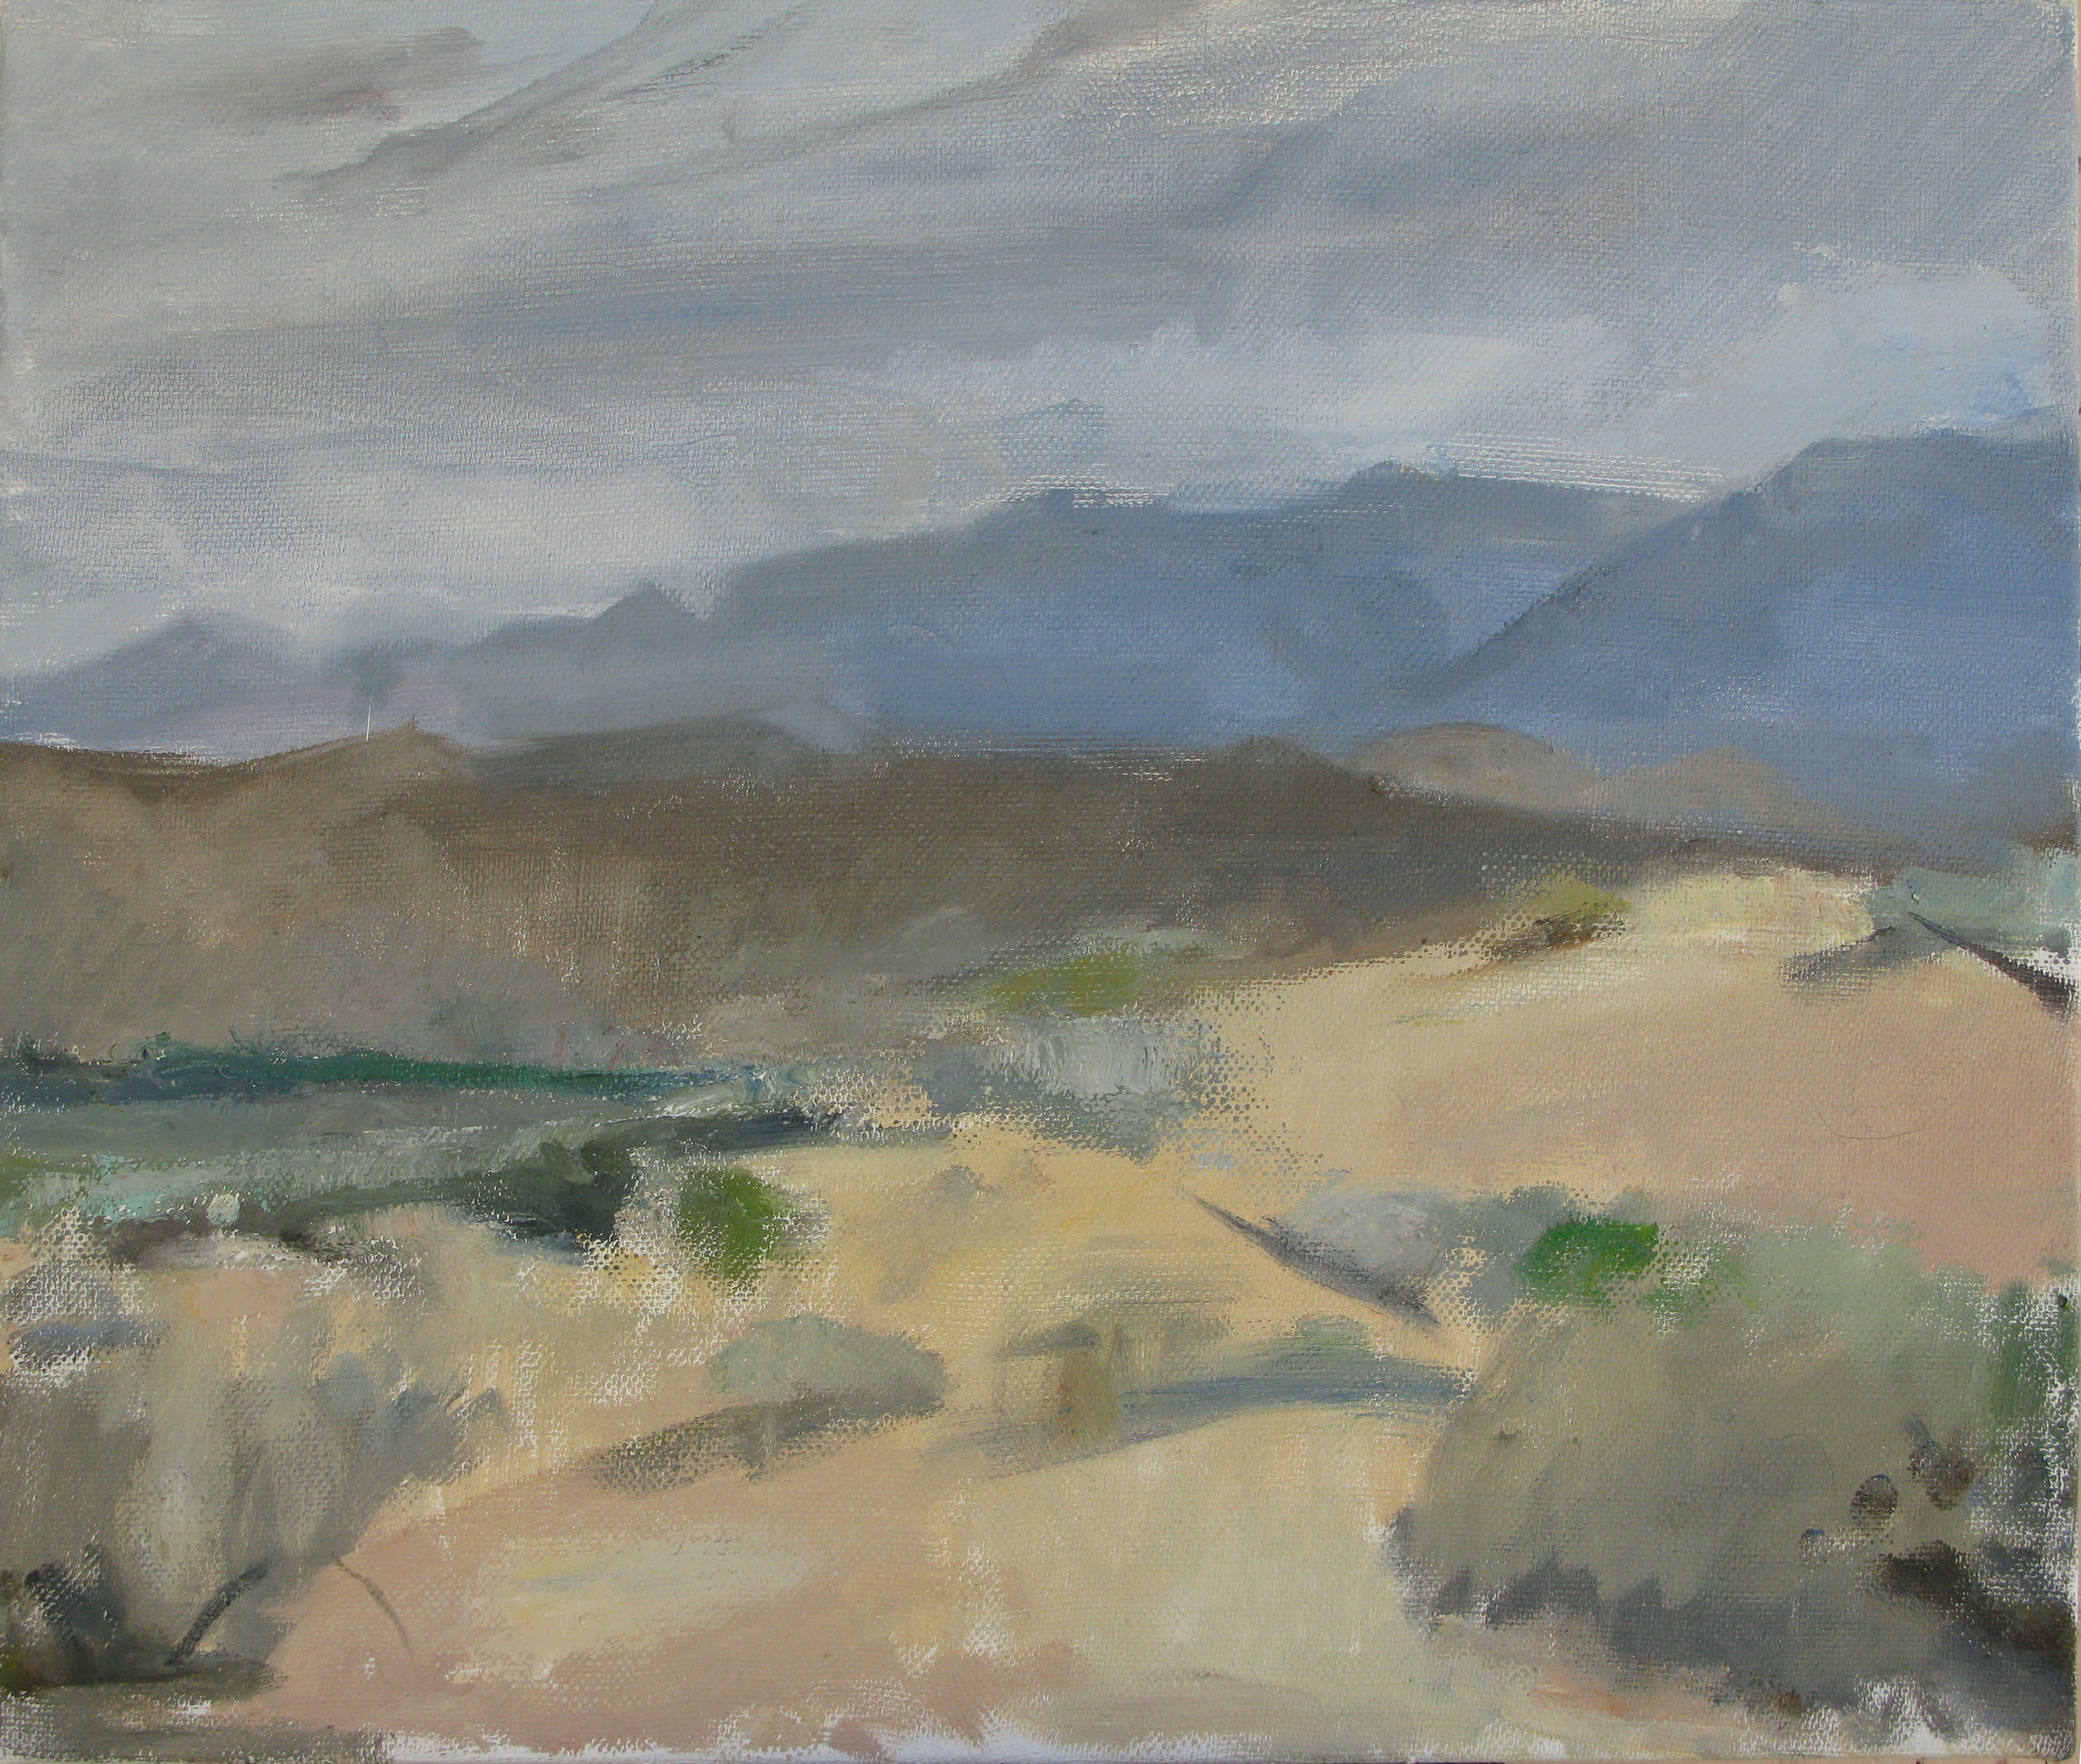 "Off Ed Powers Rd, Near 395, 21"" x 24"", oil on linen"